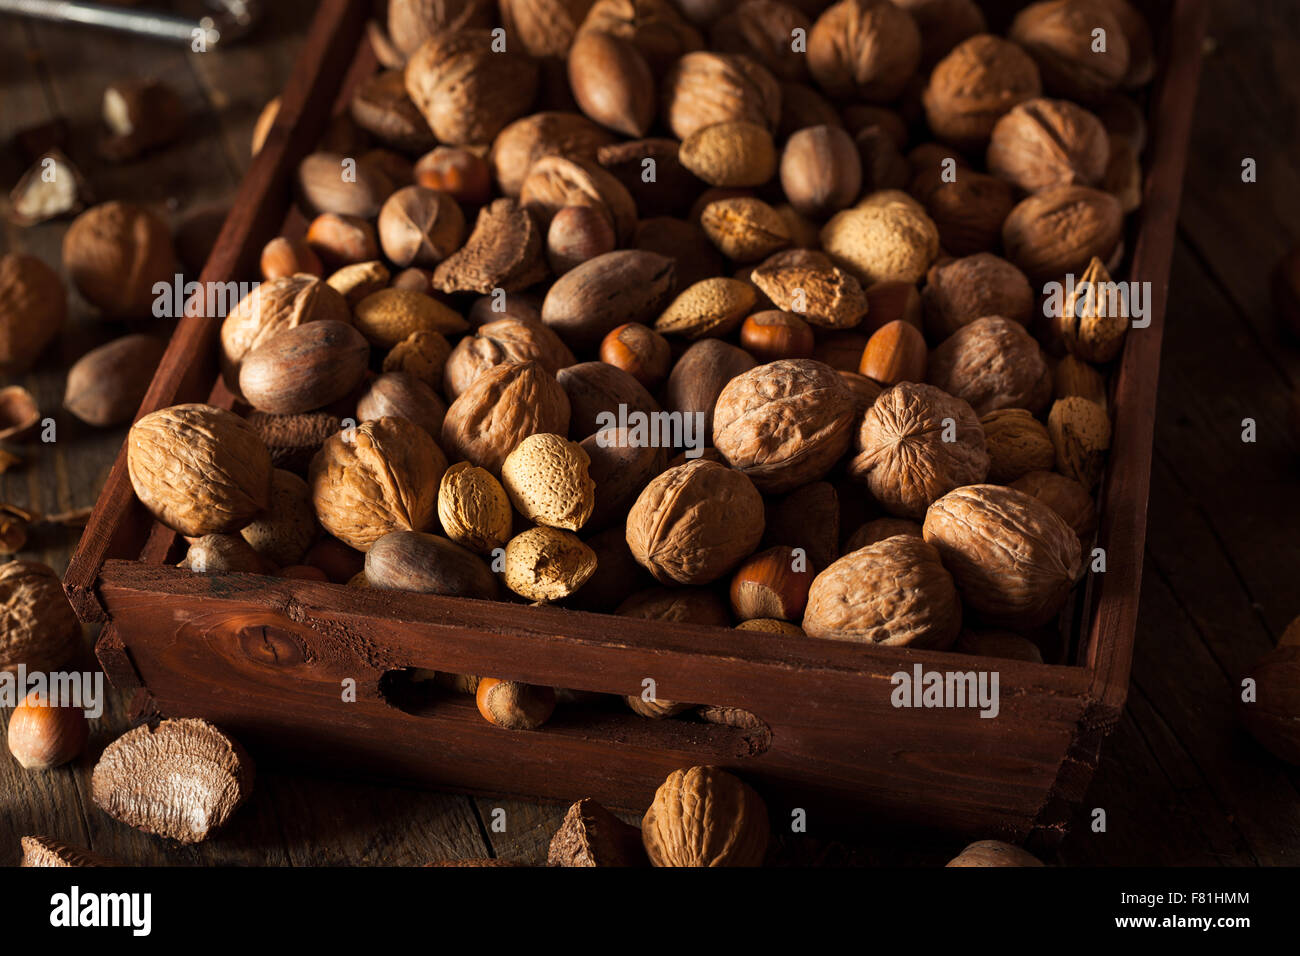 Assorted Mixed Organic Nuts with Walnuts Almonds and Pecans Stock Photo